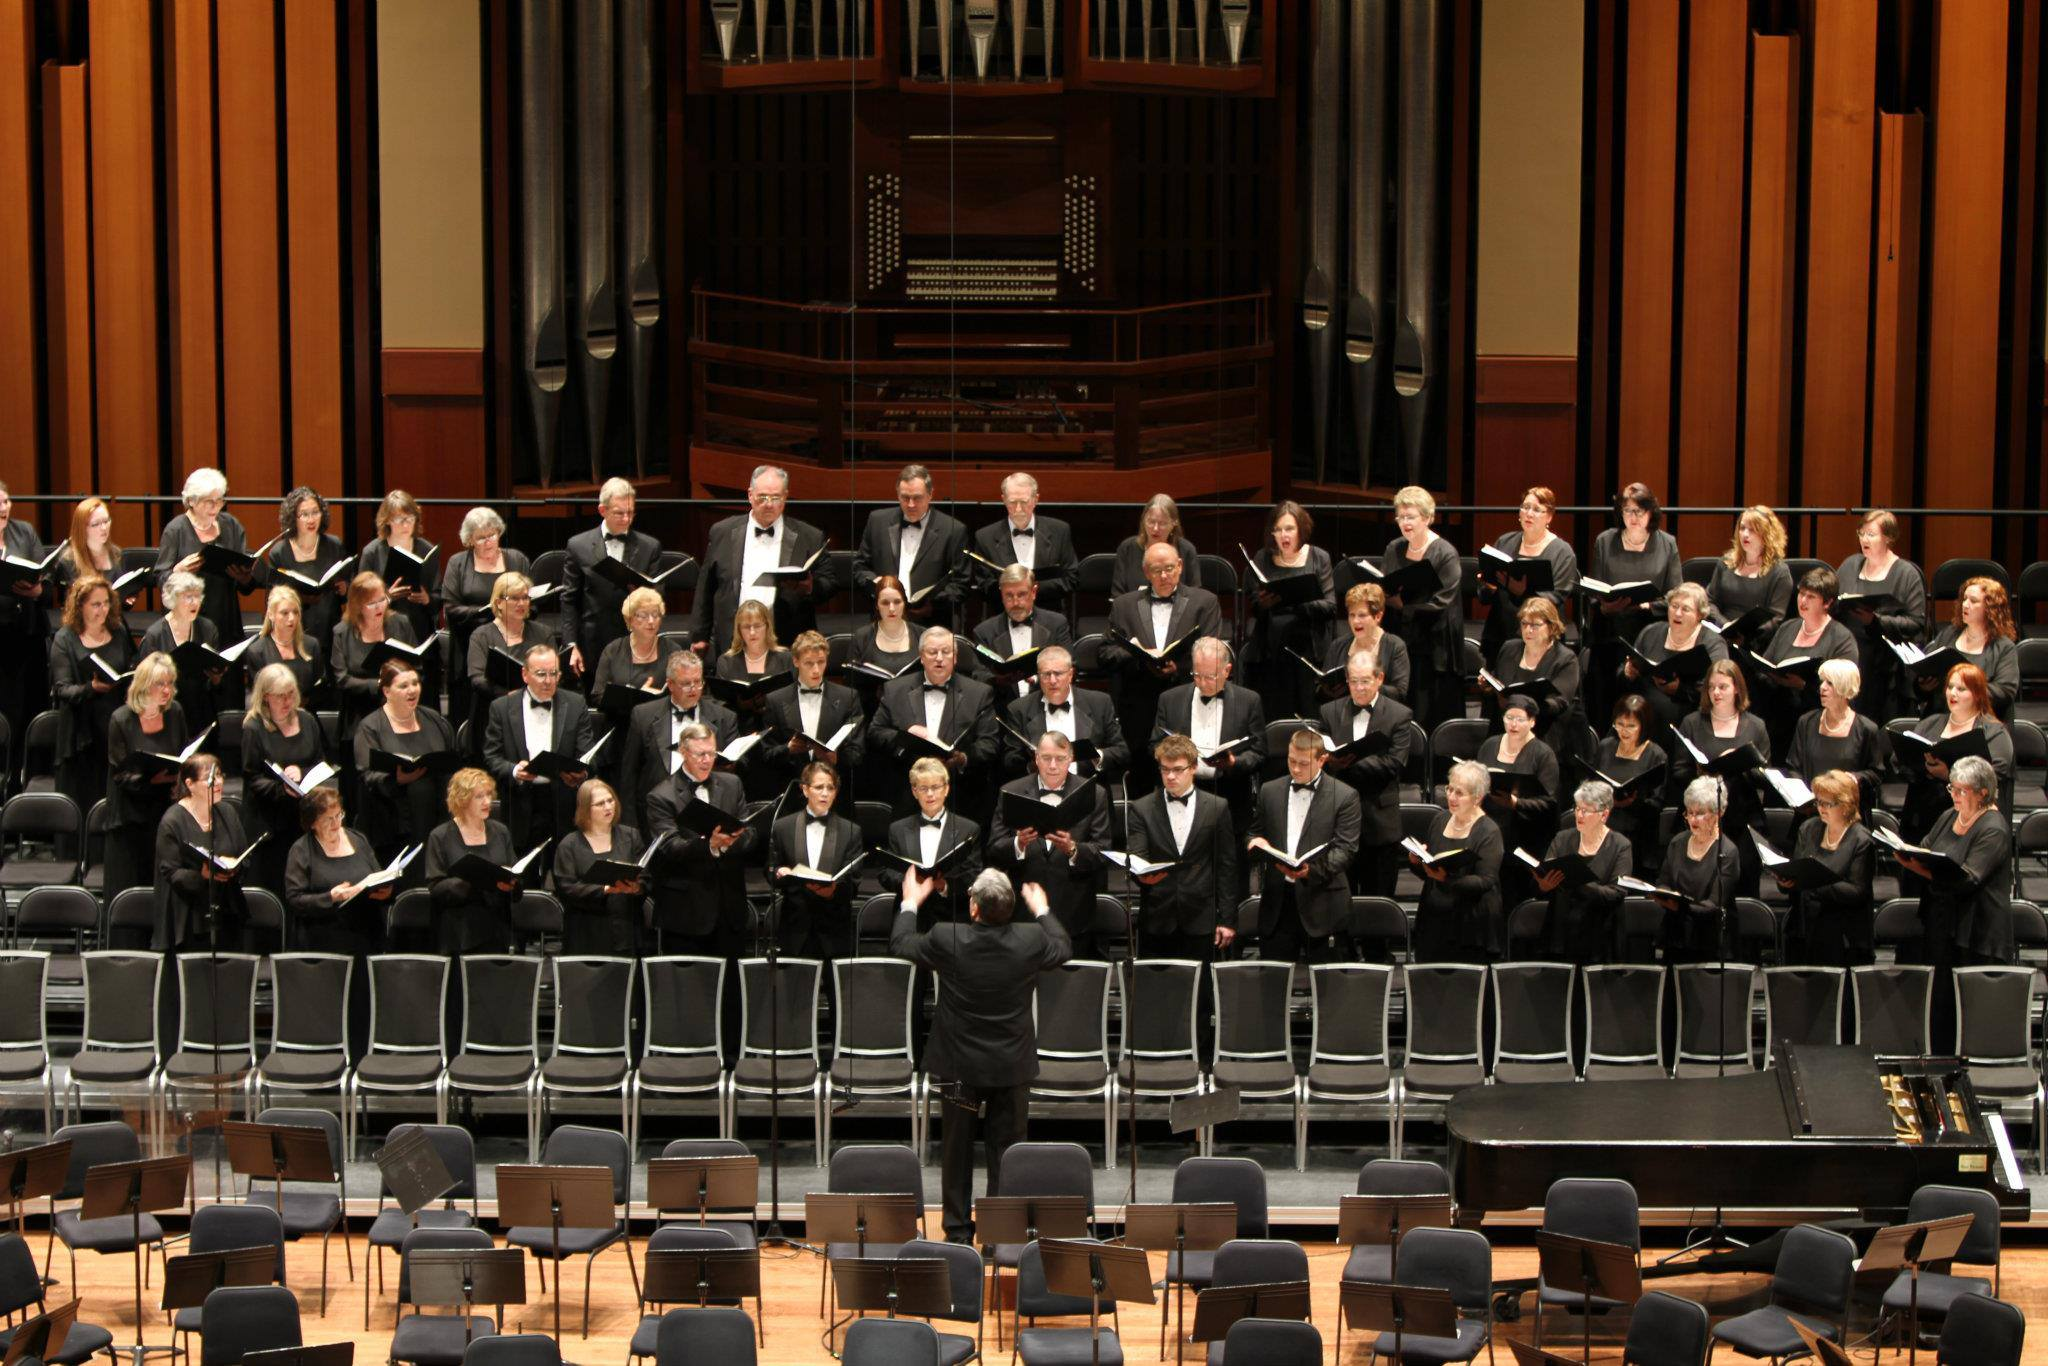 Everett Chorale. Performing at Benaroya Hall in Seattle